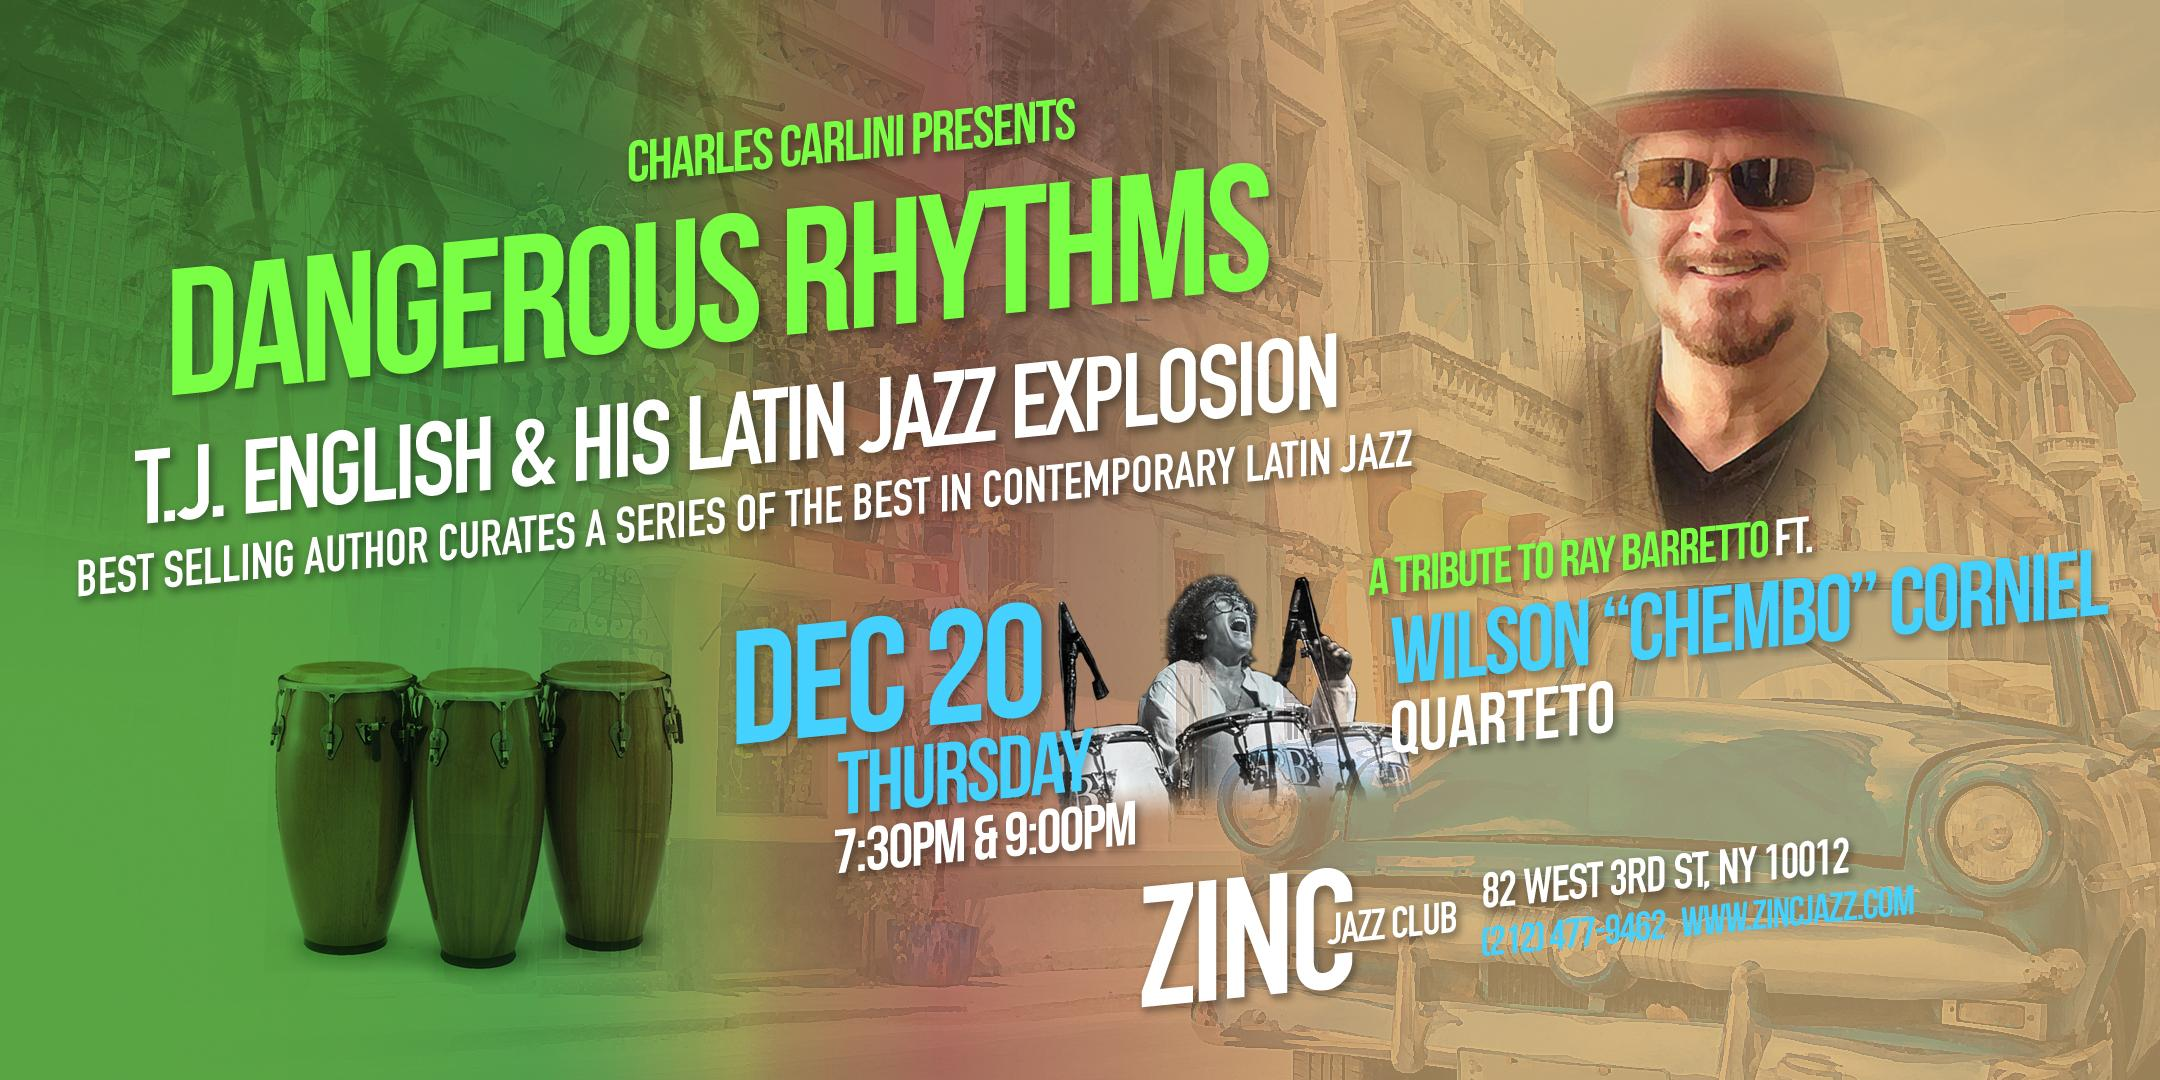 """Dangerous Rhythms: A Tribute to Ray Barretto ft. Wilson """"Chembo"""" Corniel"""